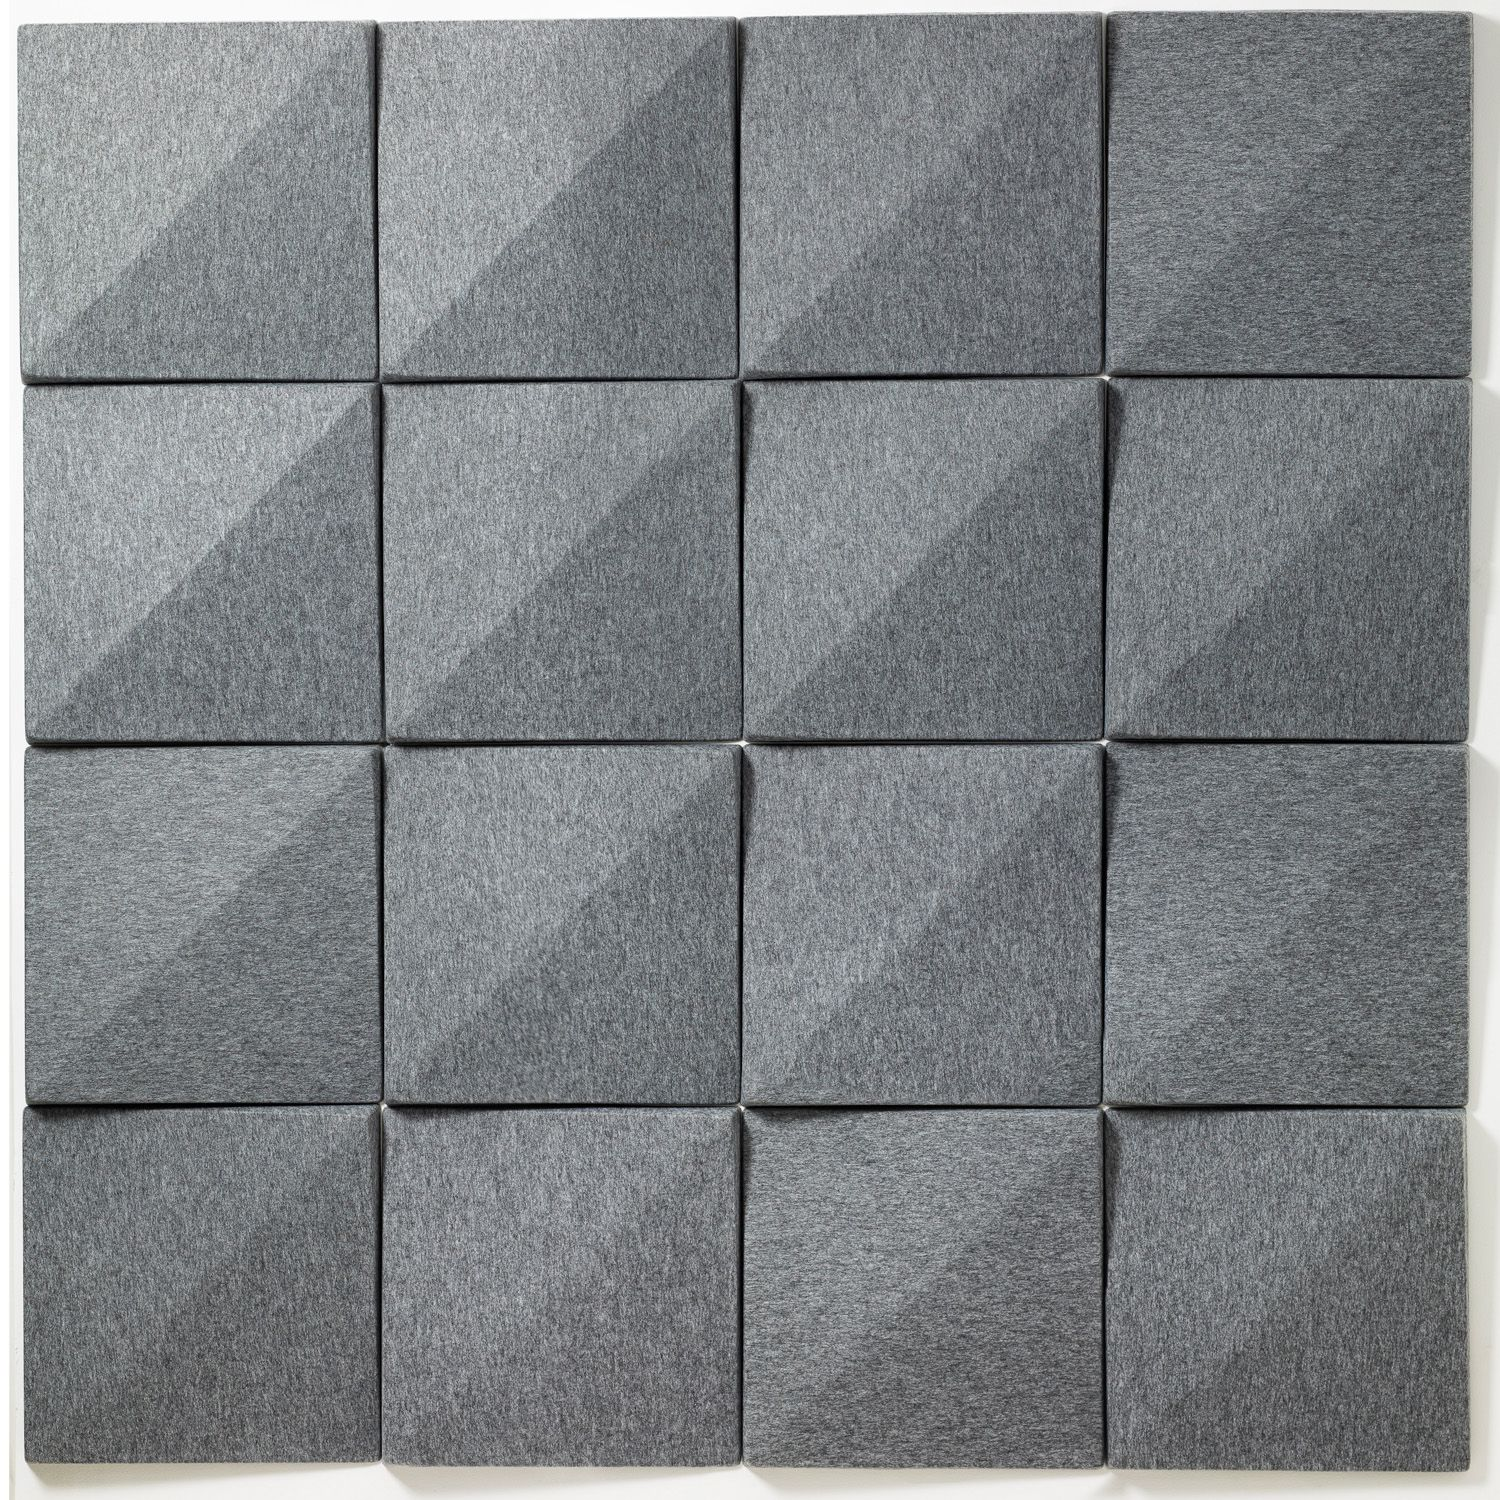 Pin By Amanda Mire On Lsu Misc Acoustic Wall Panels